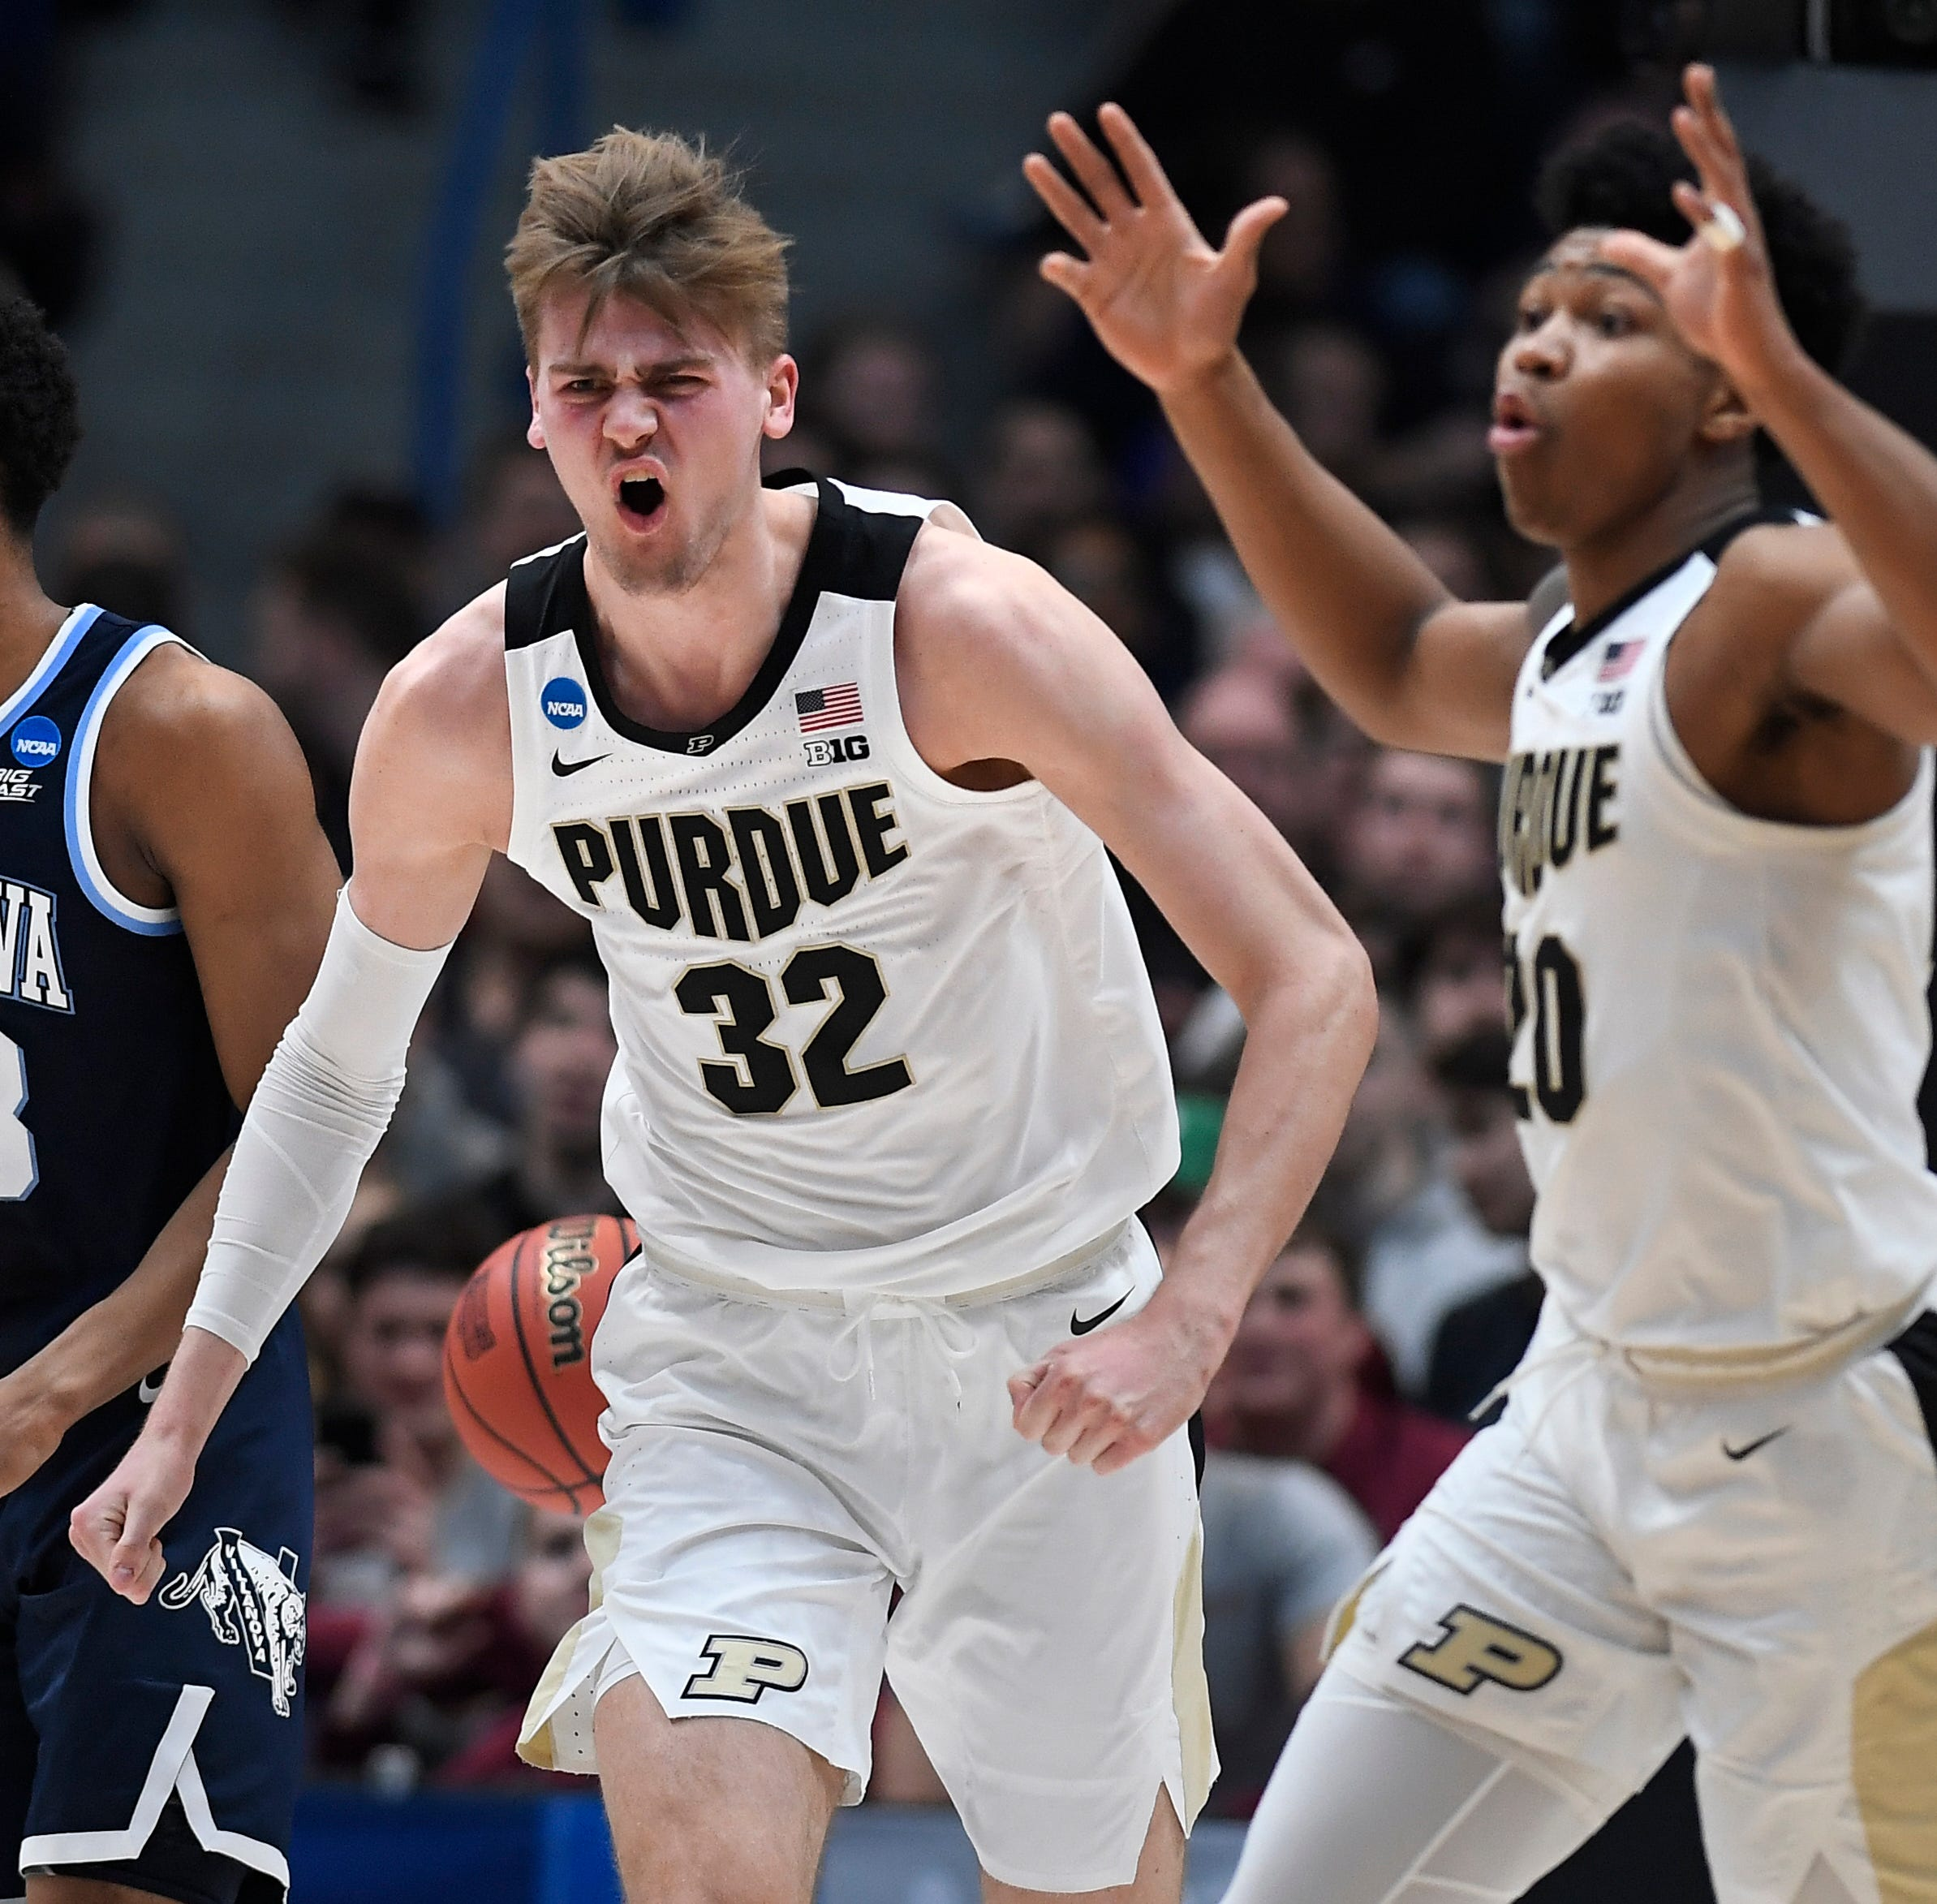 Purdue obliterated Villanova. Here's how Twitter responded.